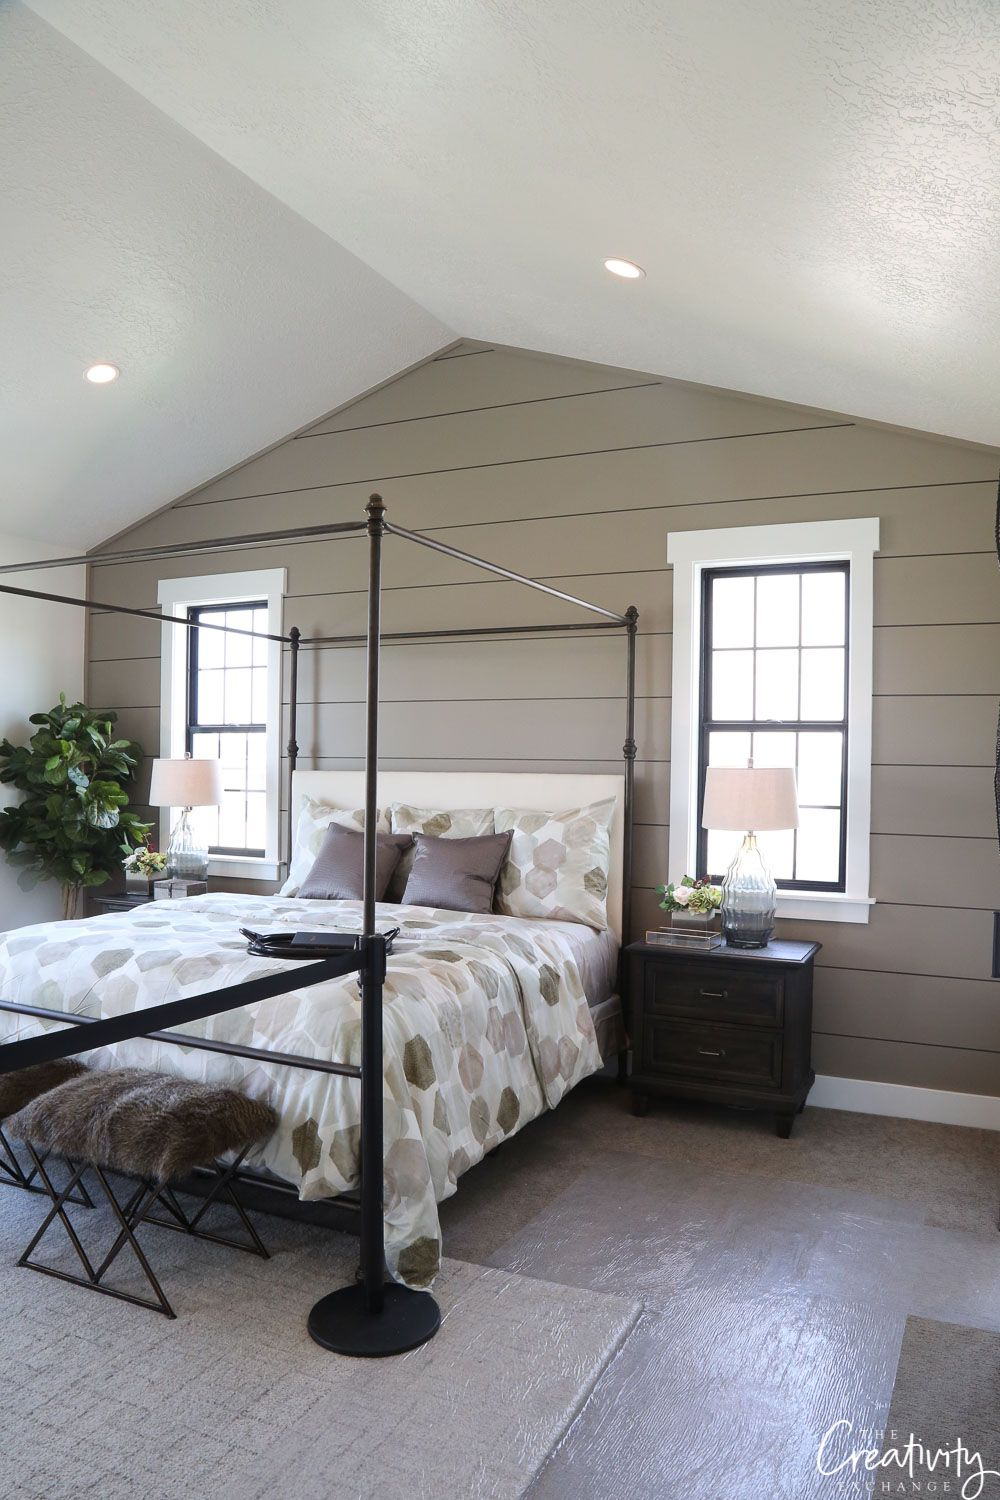 2019 Paint Color Trends and Forecasts Trending paint